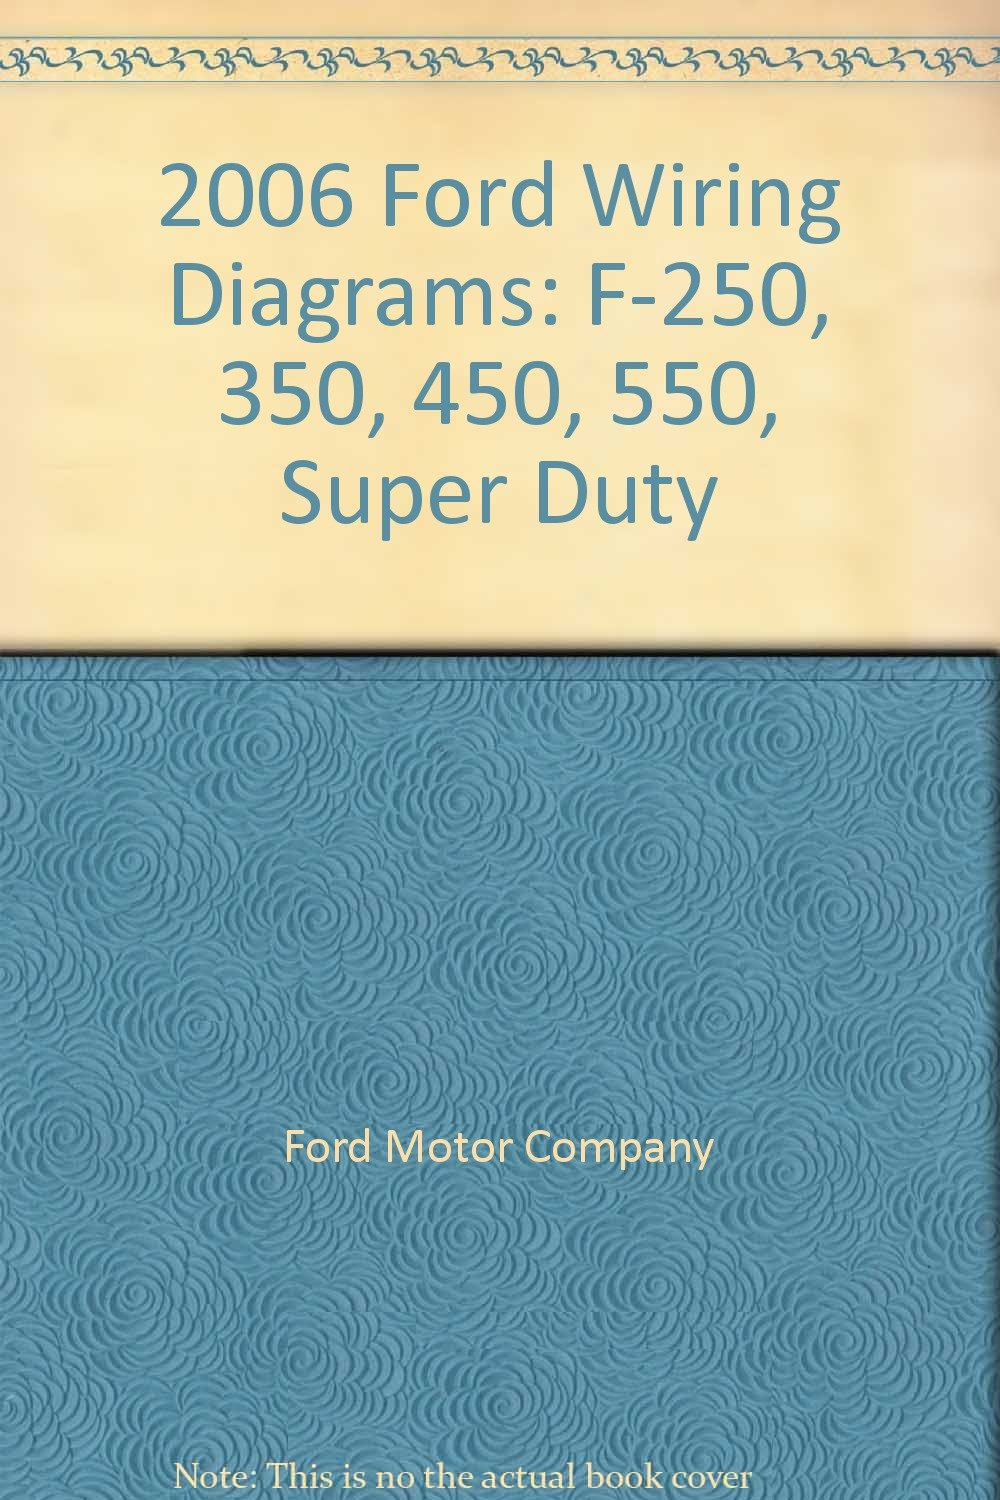 2006 ford wiring diagrams f 250, 350, 450, 550, super duty ford 2006 Ford Truck Wiring Diagram